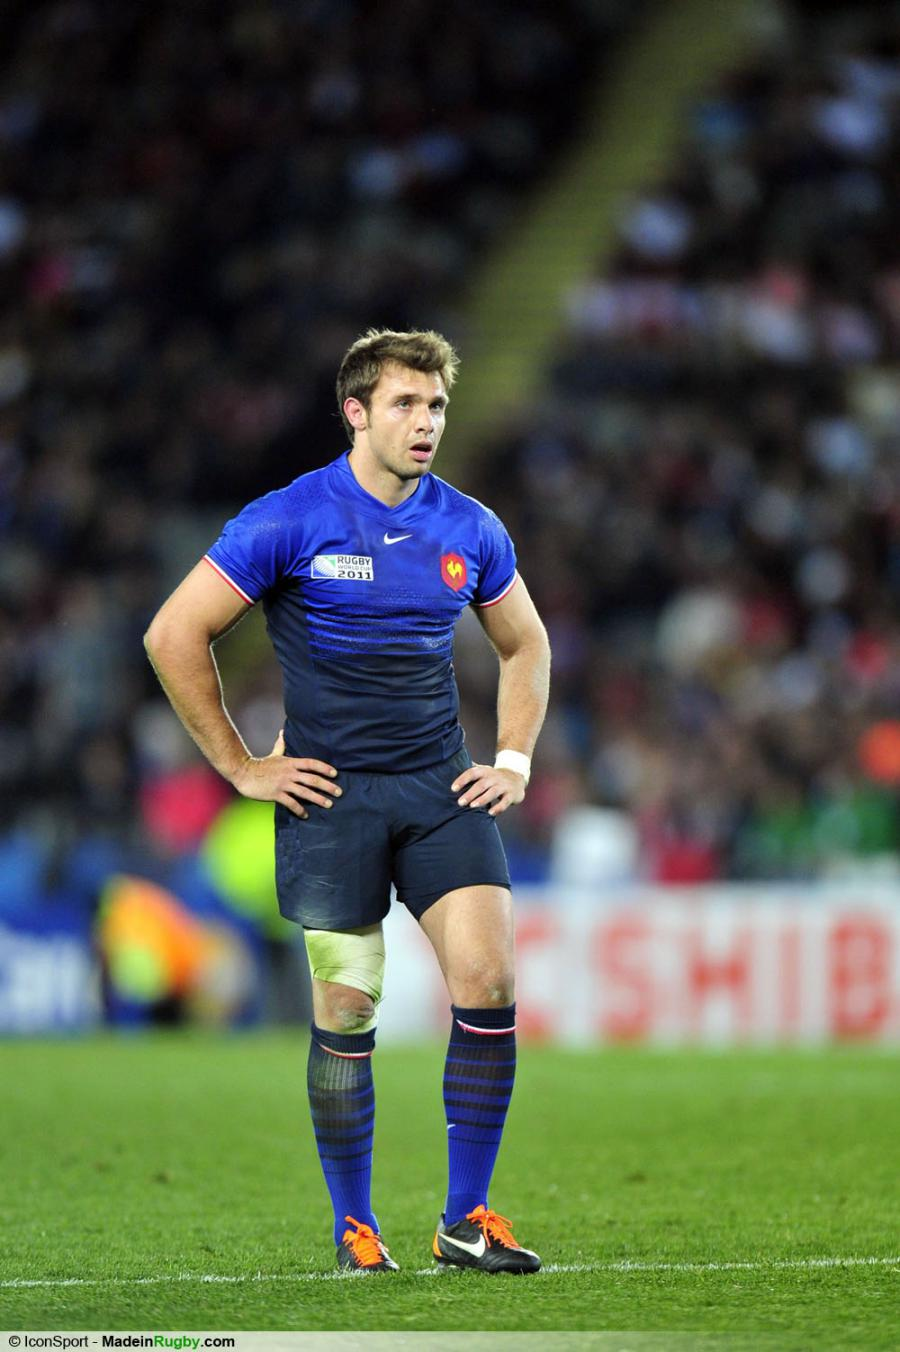 Photos foot vincent clerc angleterre france 1 4 finale coupe du monde de - Finale coupe du monde de rugby 2011 video ...